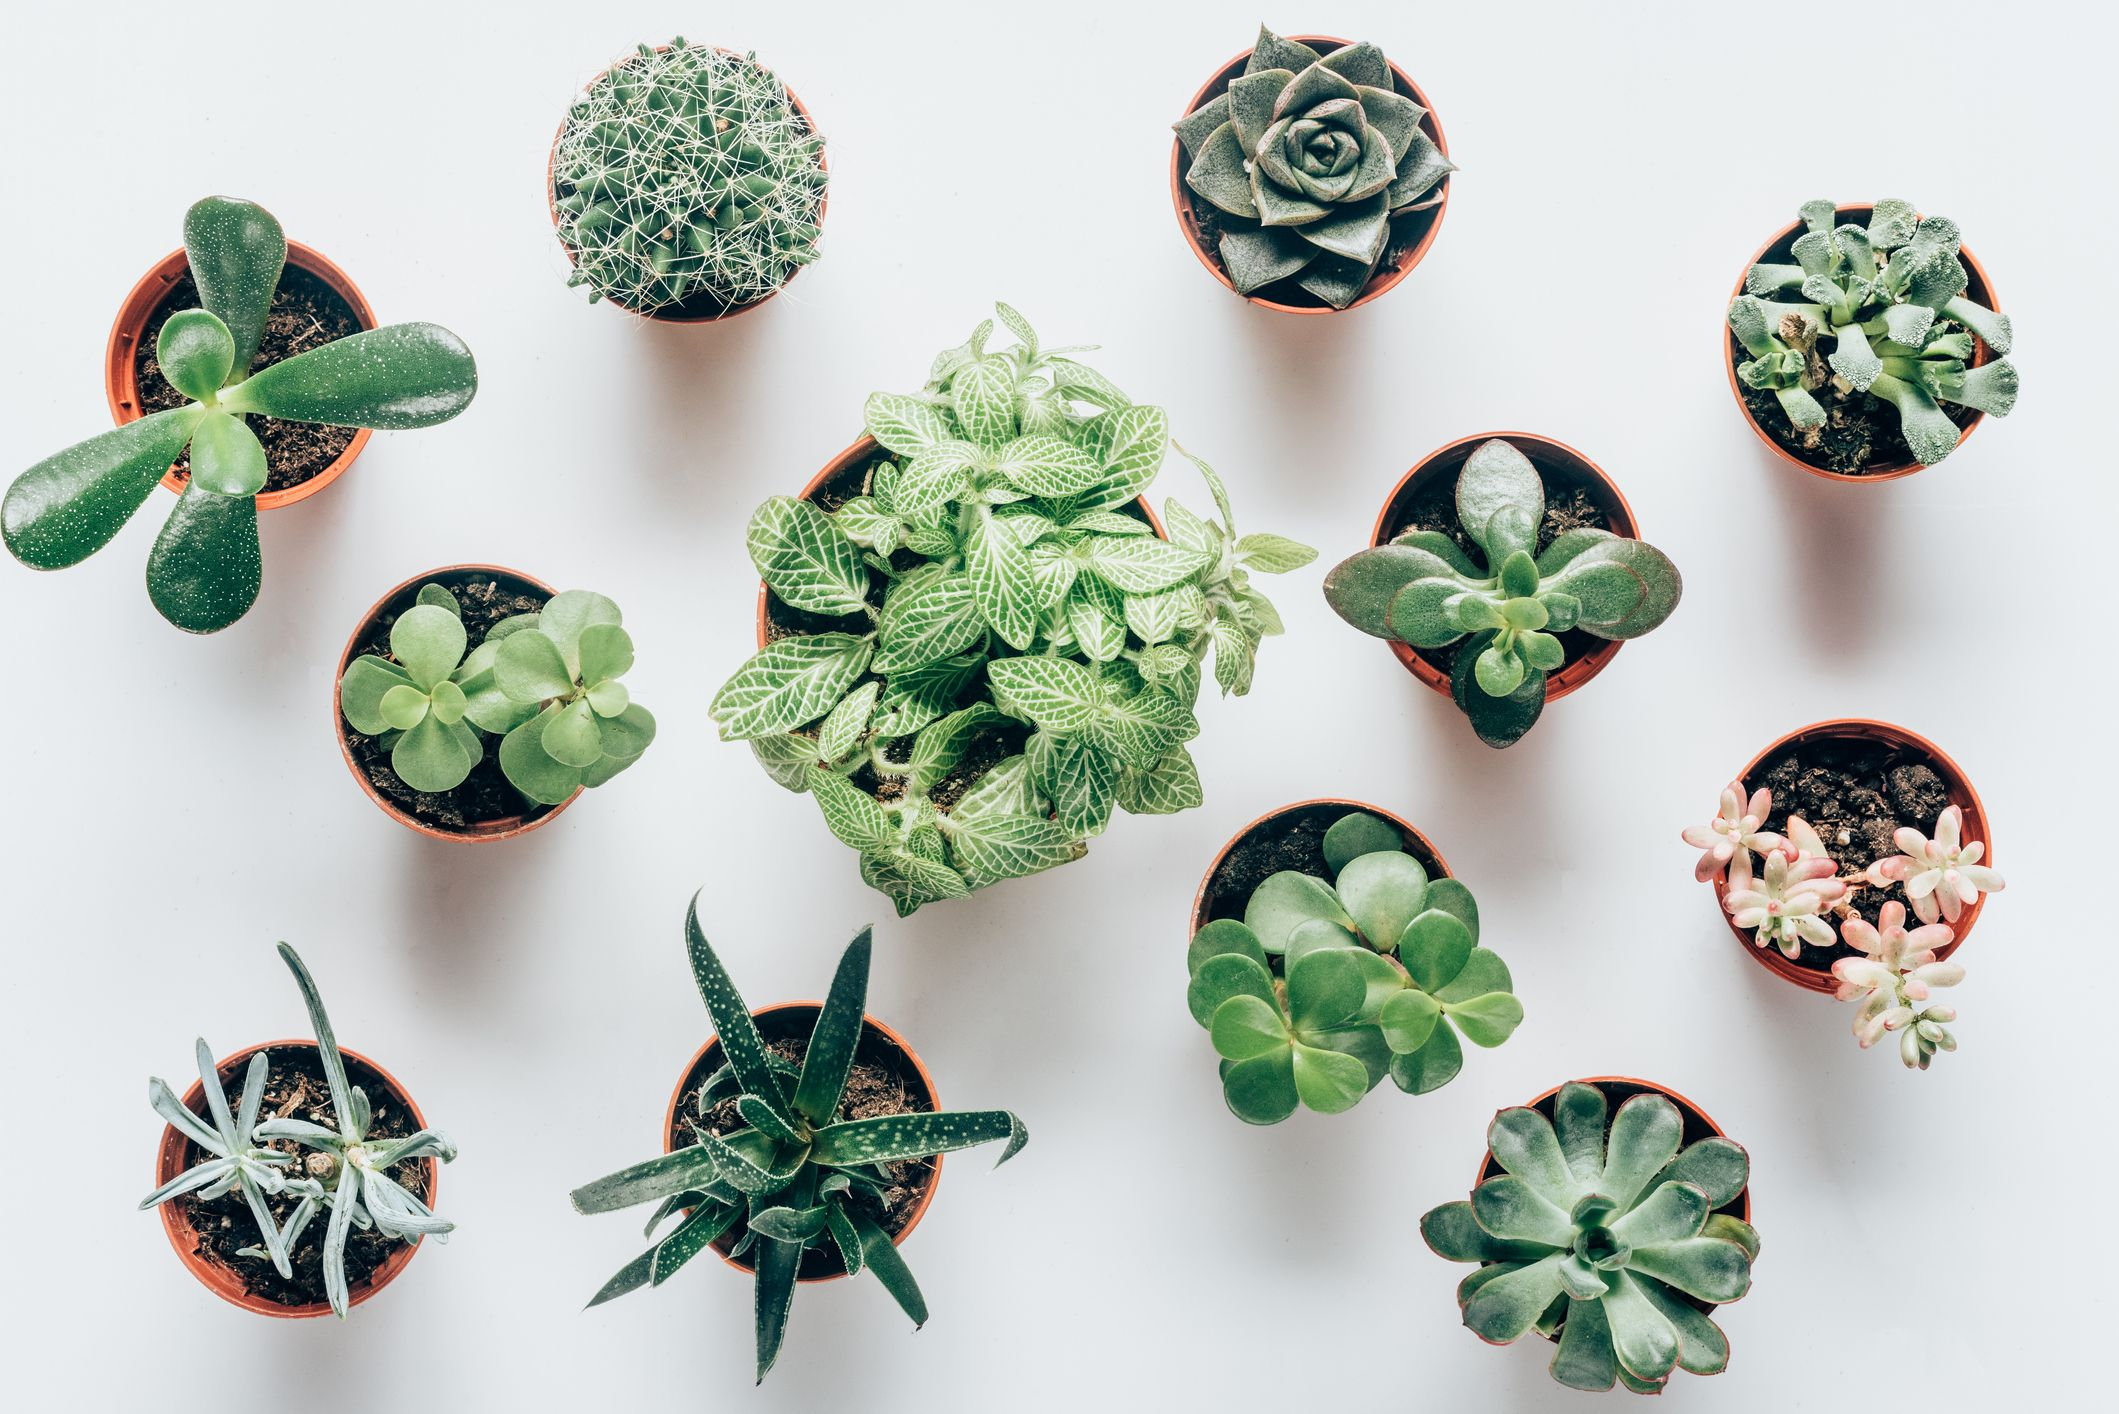 10 Amazing Types of Succulents Every Plant Lover Needs to Know